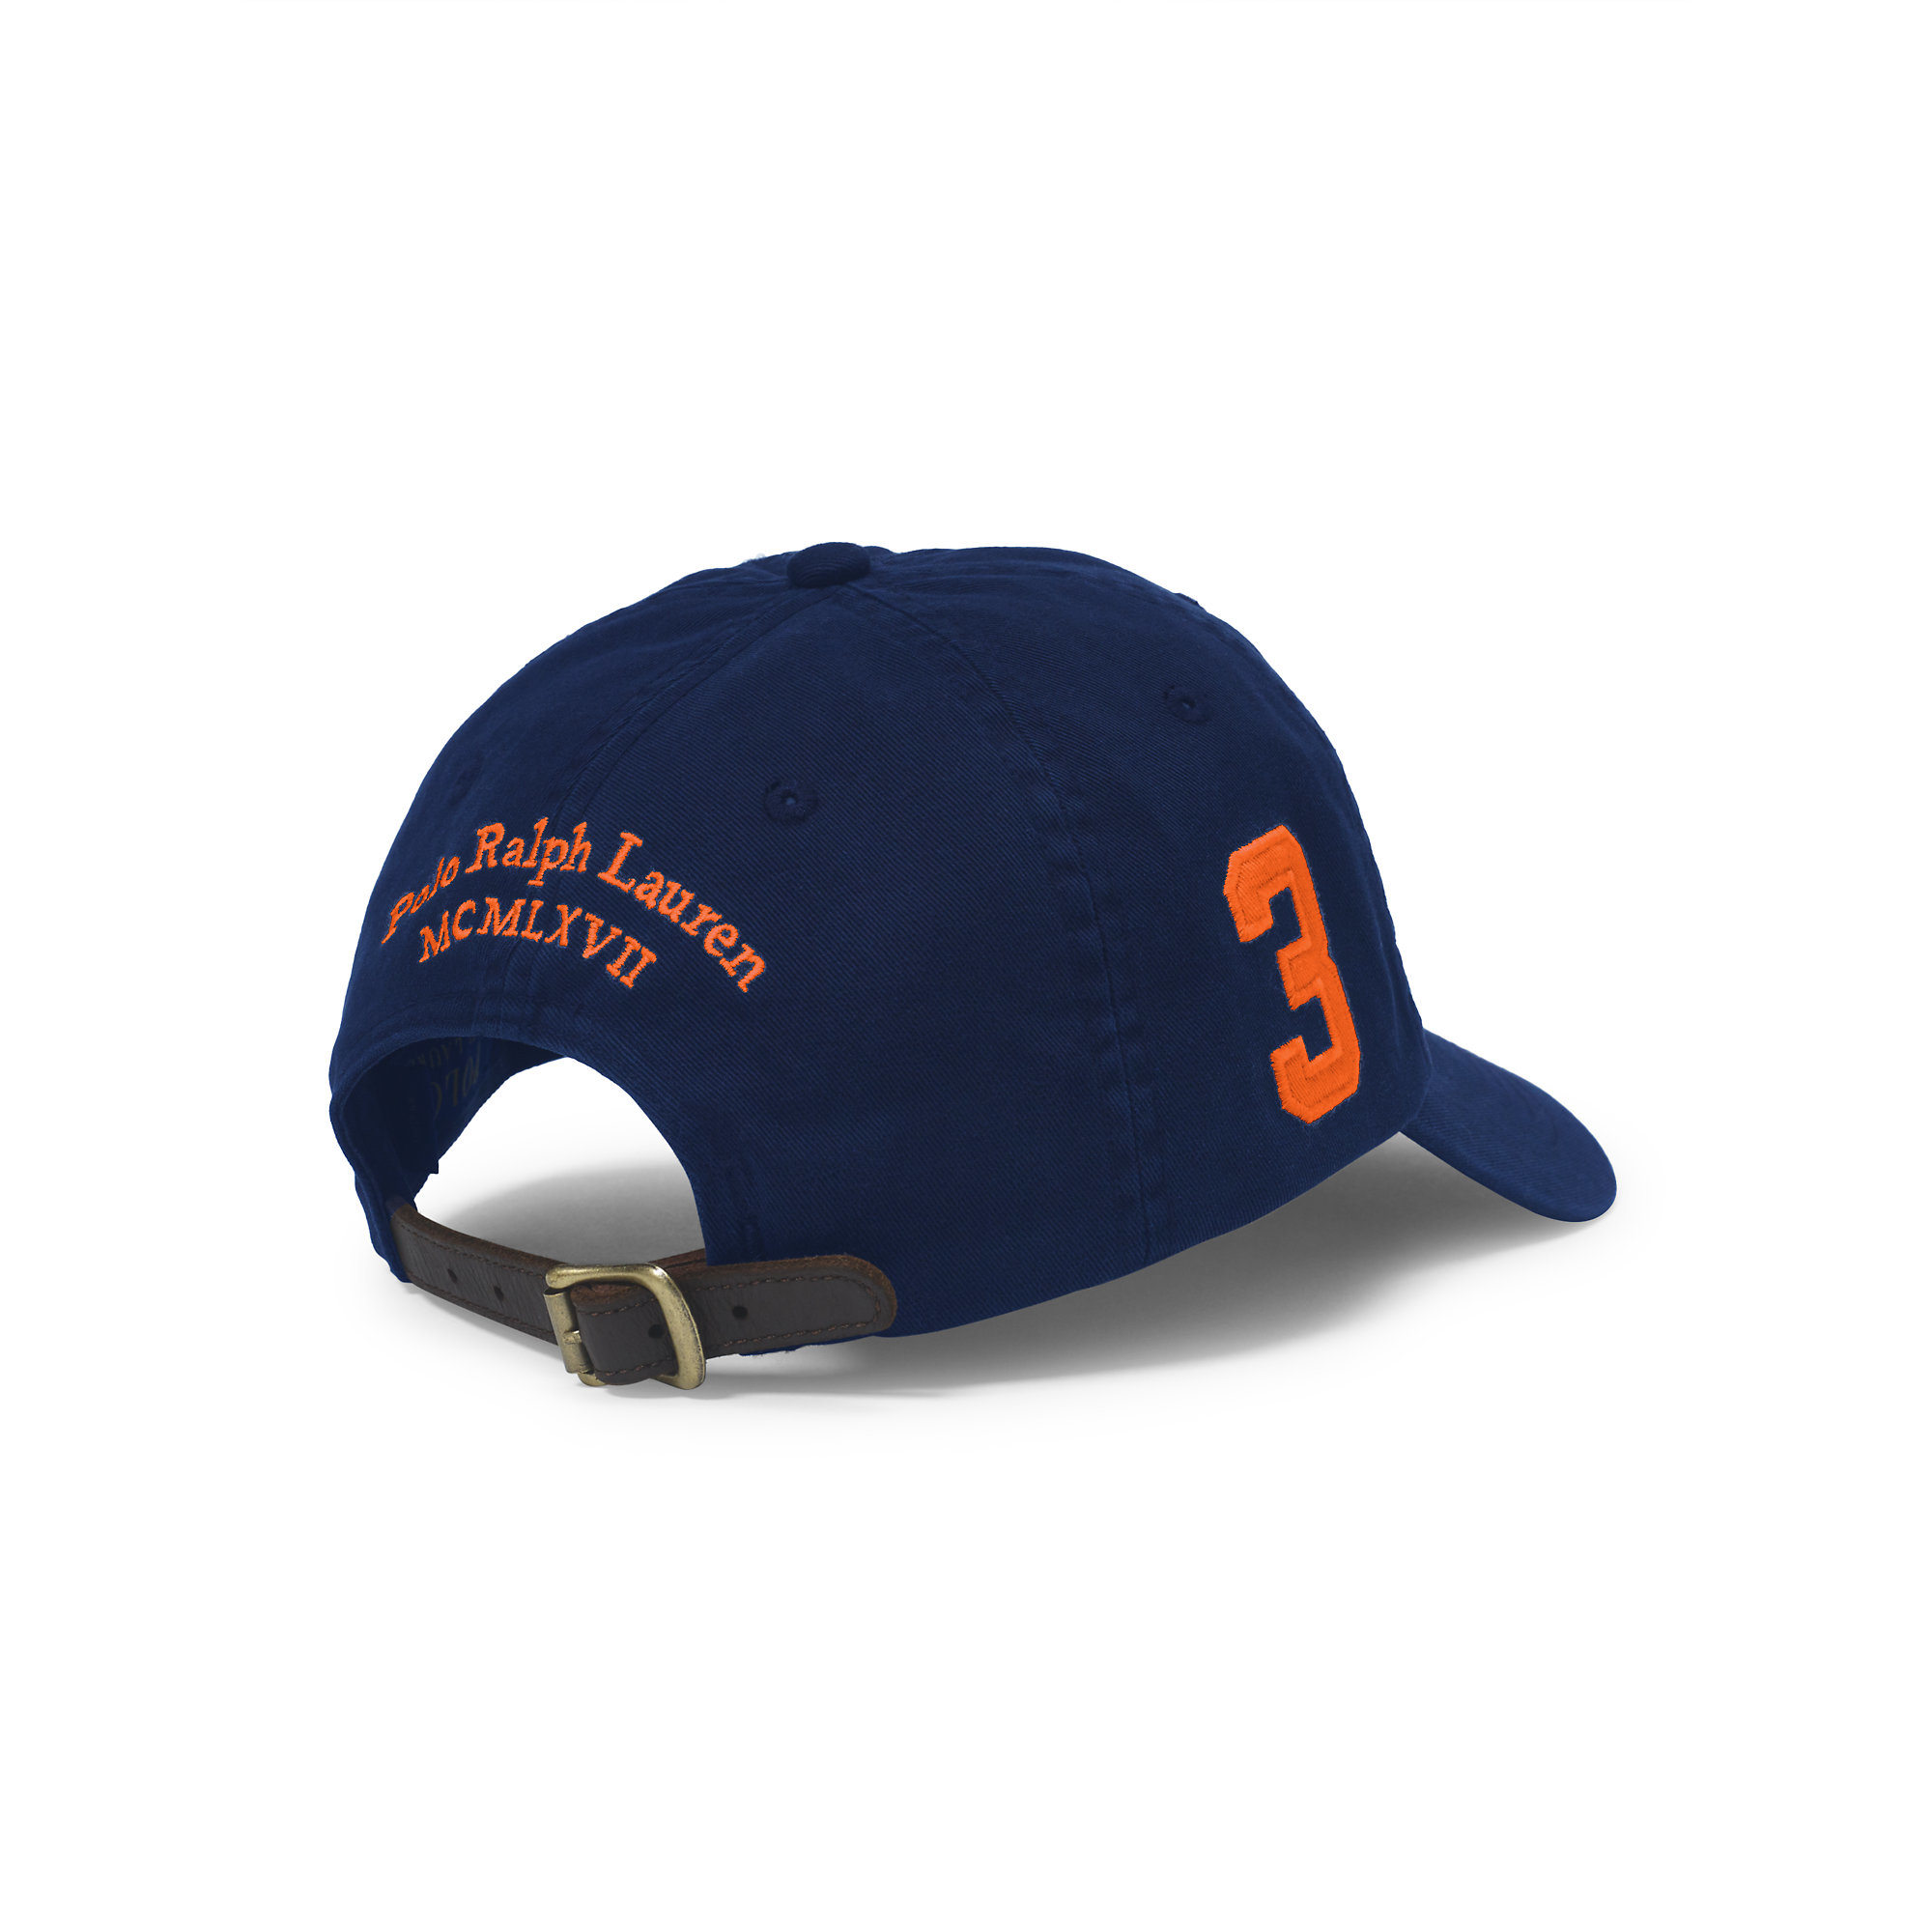 302ee47fc0d56 Polo Ralph Lauren Big Pony Chino Baseball Cap in Blue for Men - Lyst